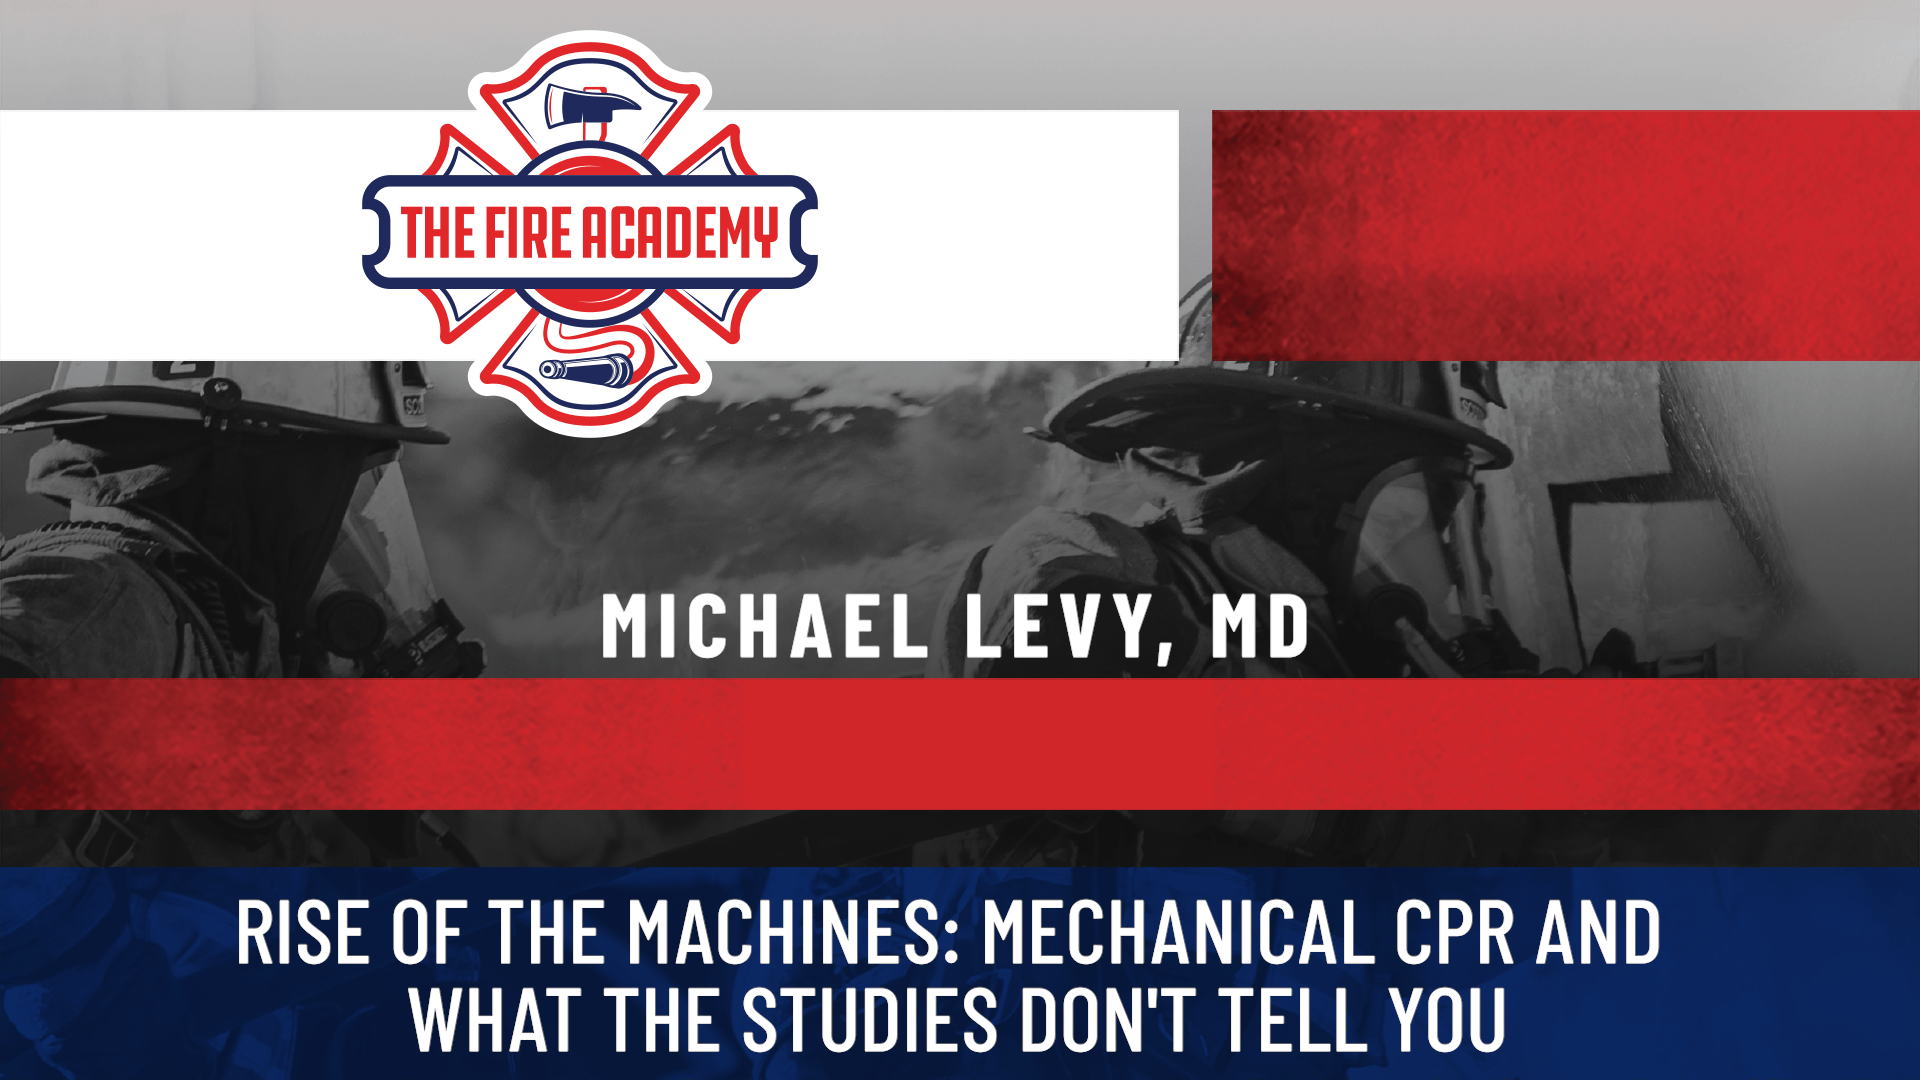 Rise of the Machines: Mechanical CPR and What the Studies Don't Tell You